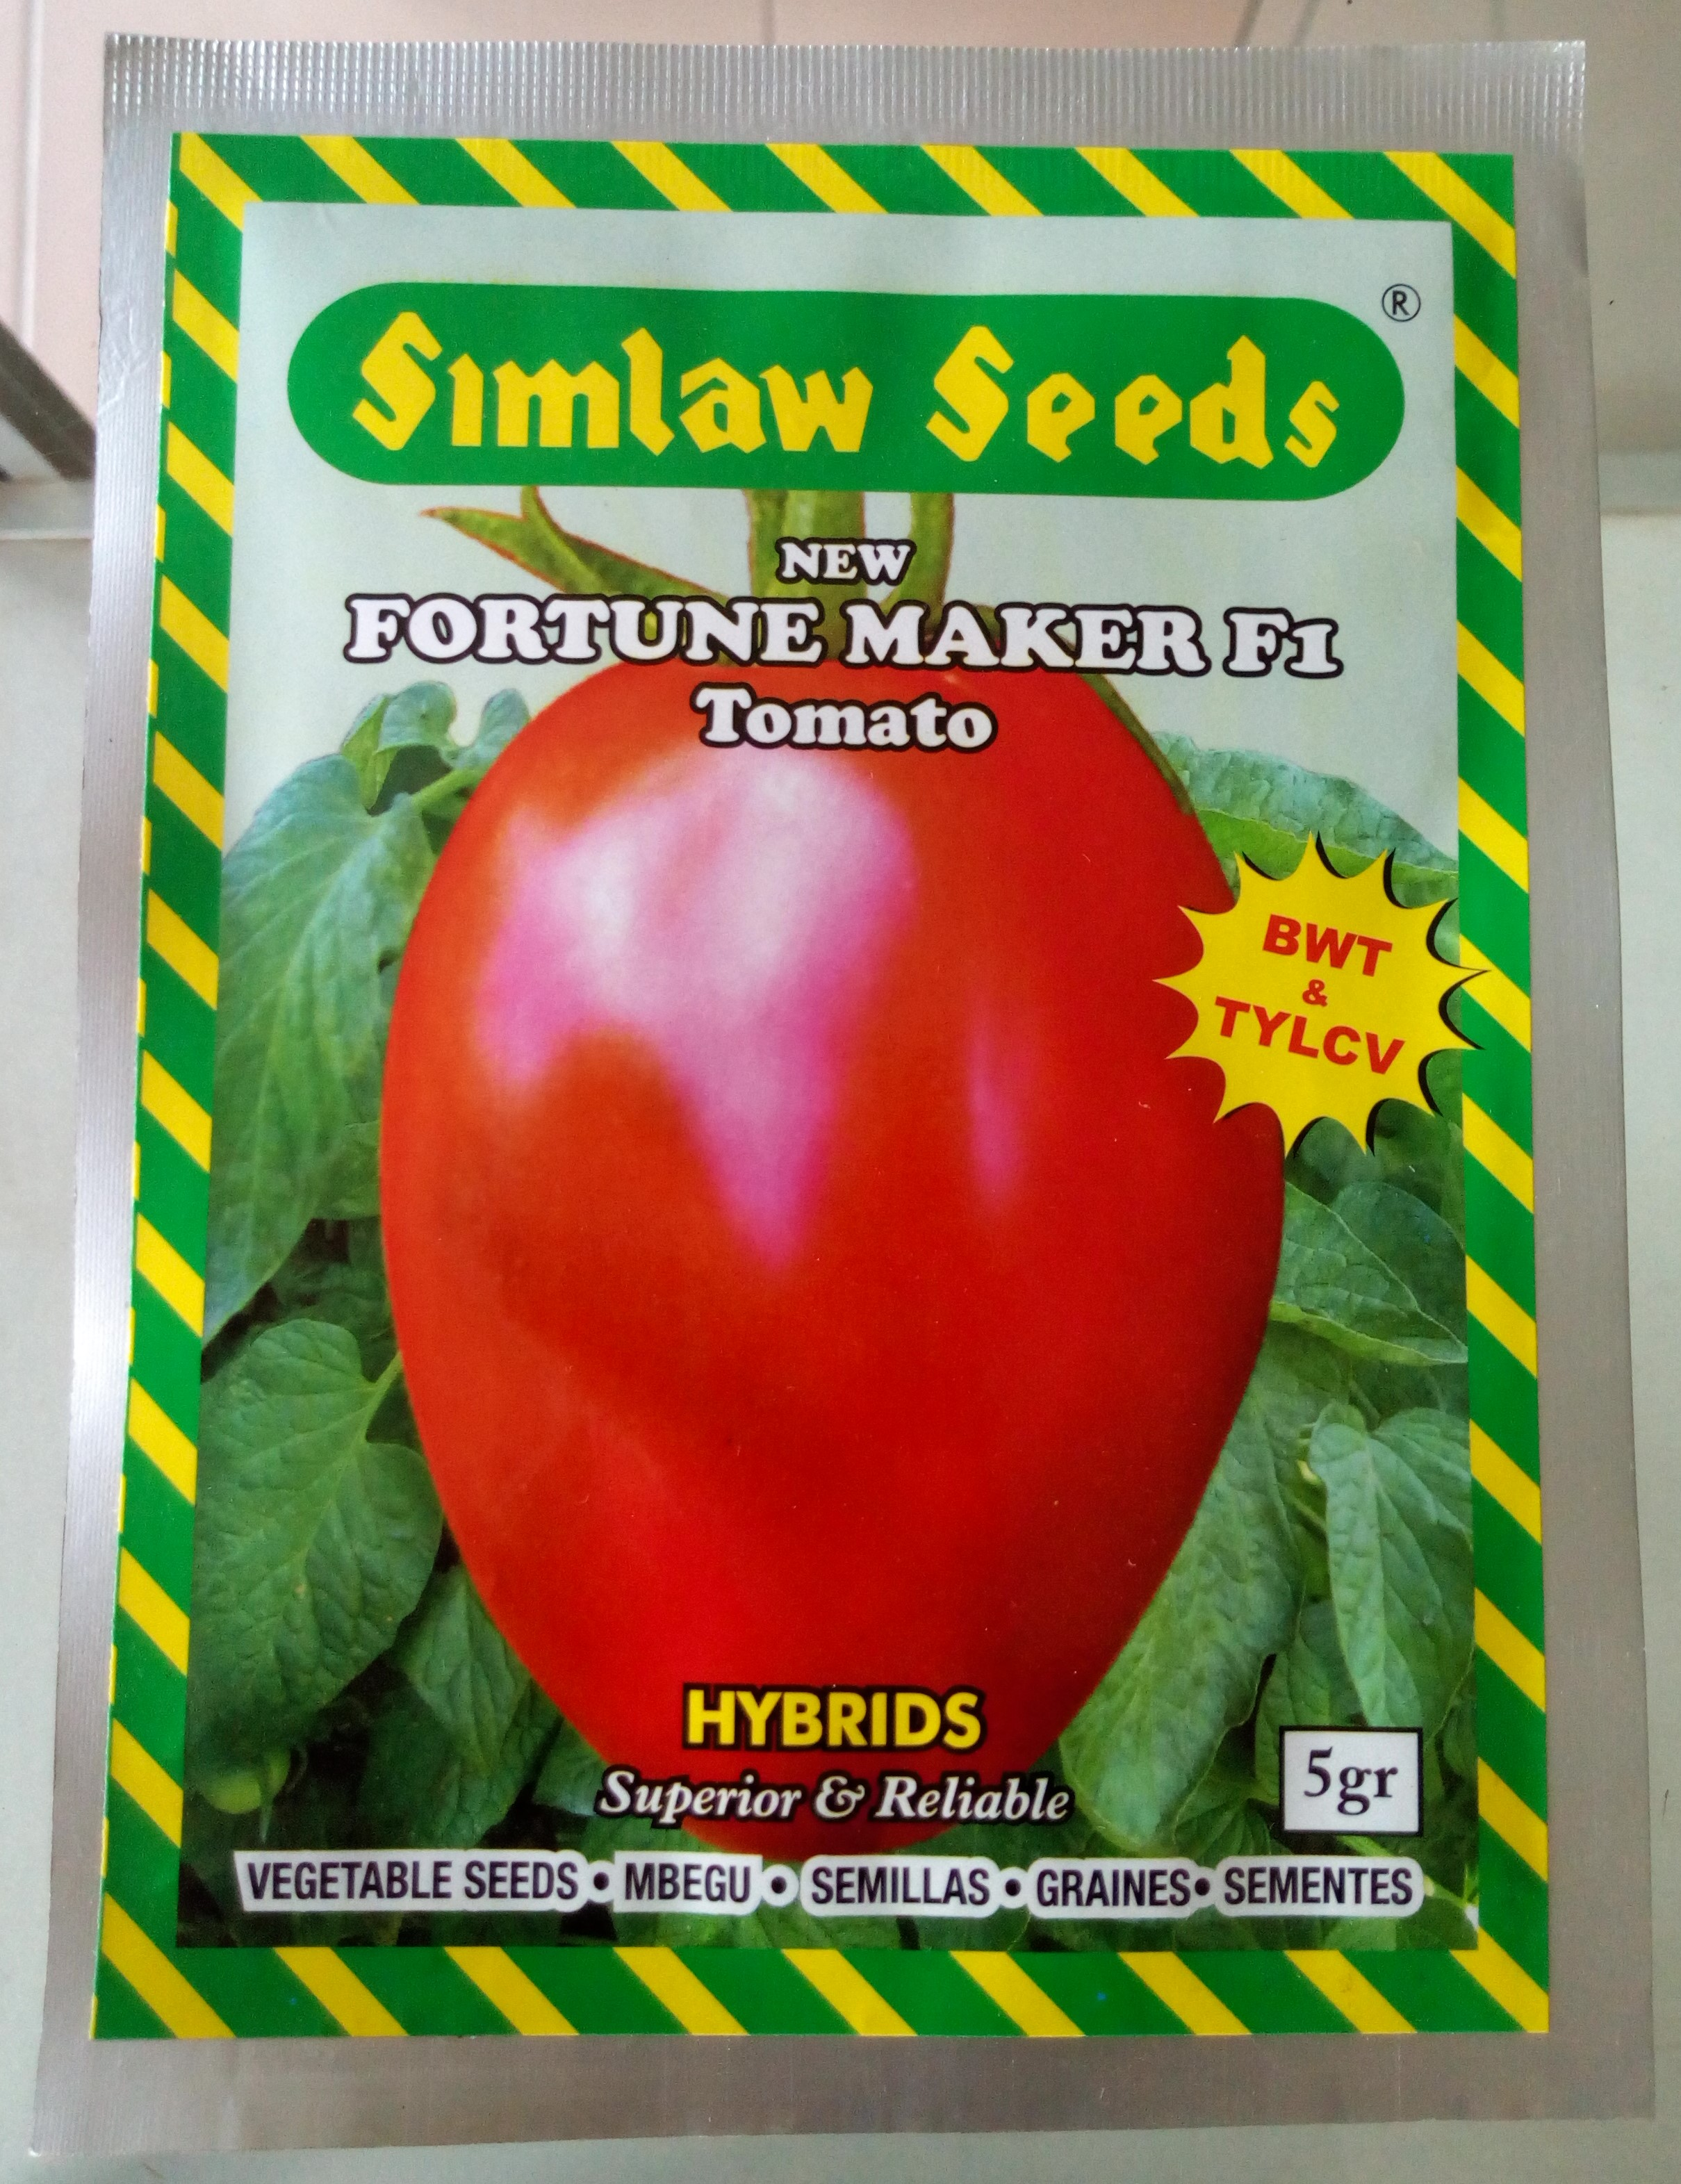 New Fortune Maker F1 Tomato Seeds (10gm)